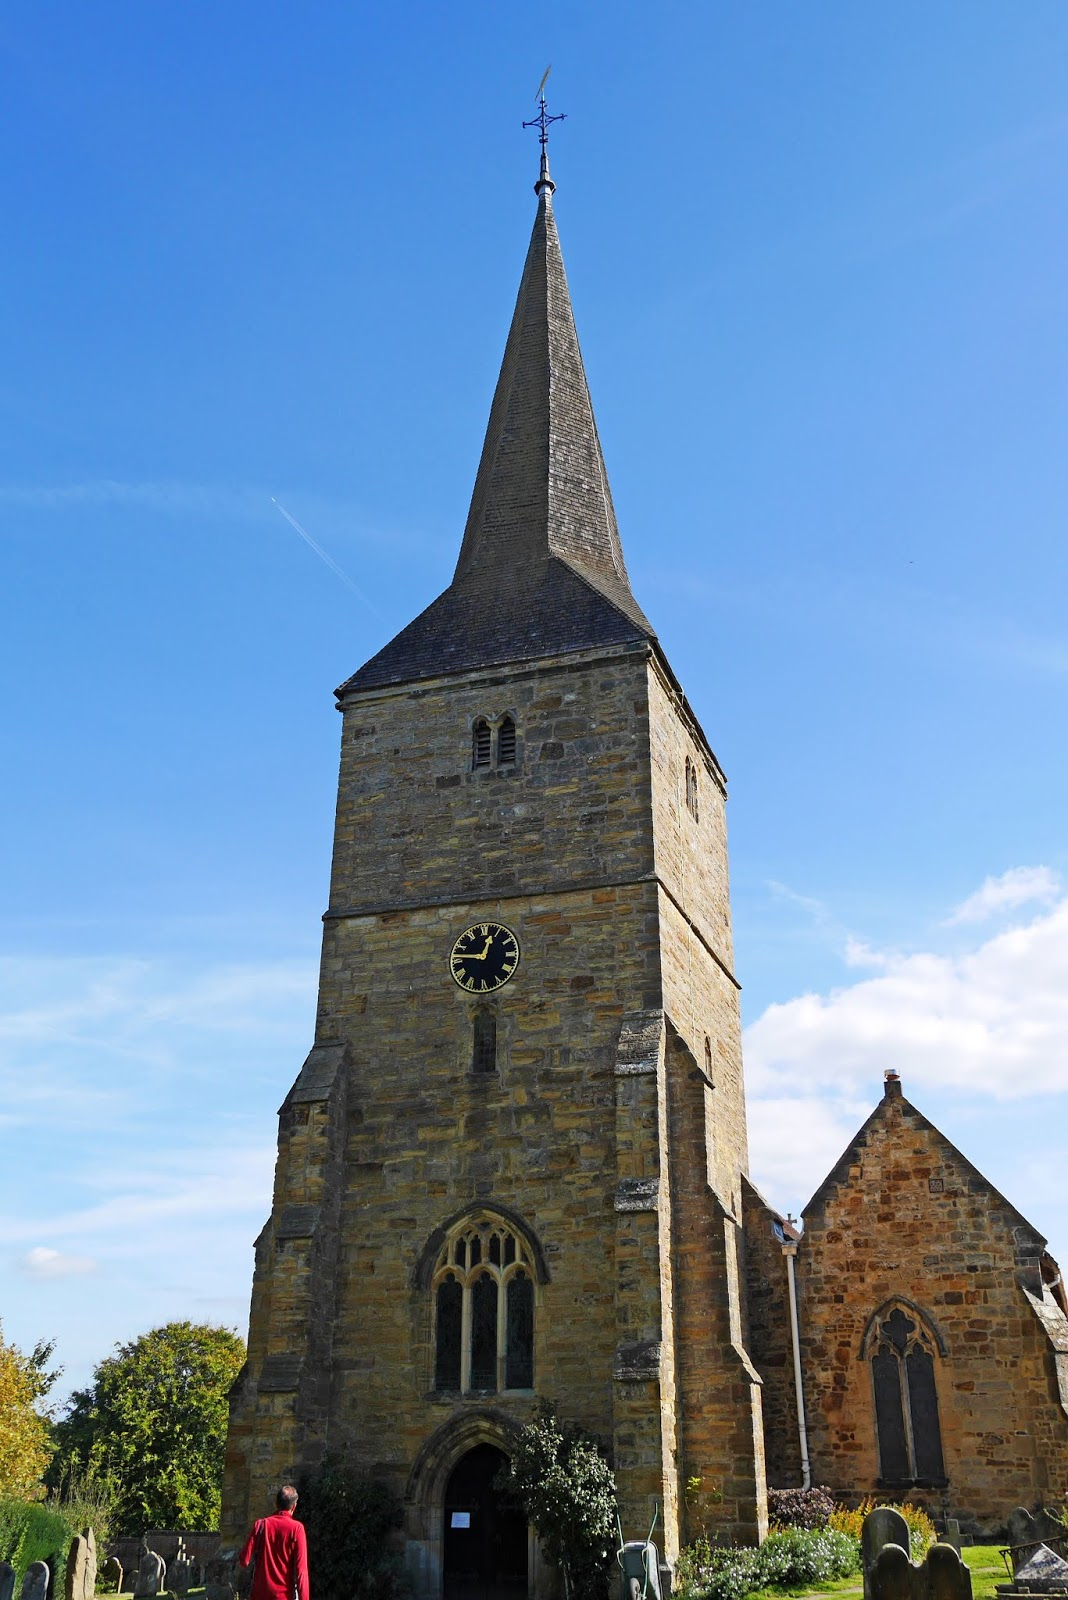 Church in Hartfield, East Sussex